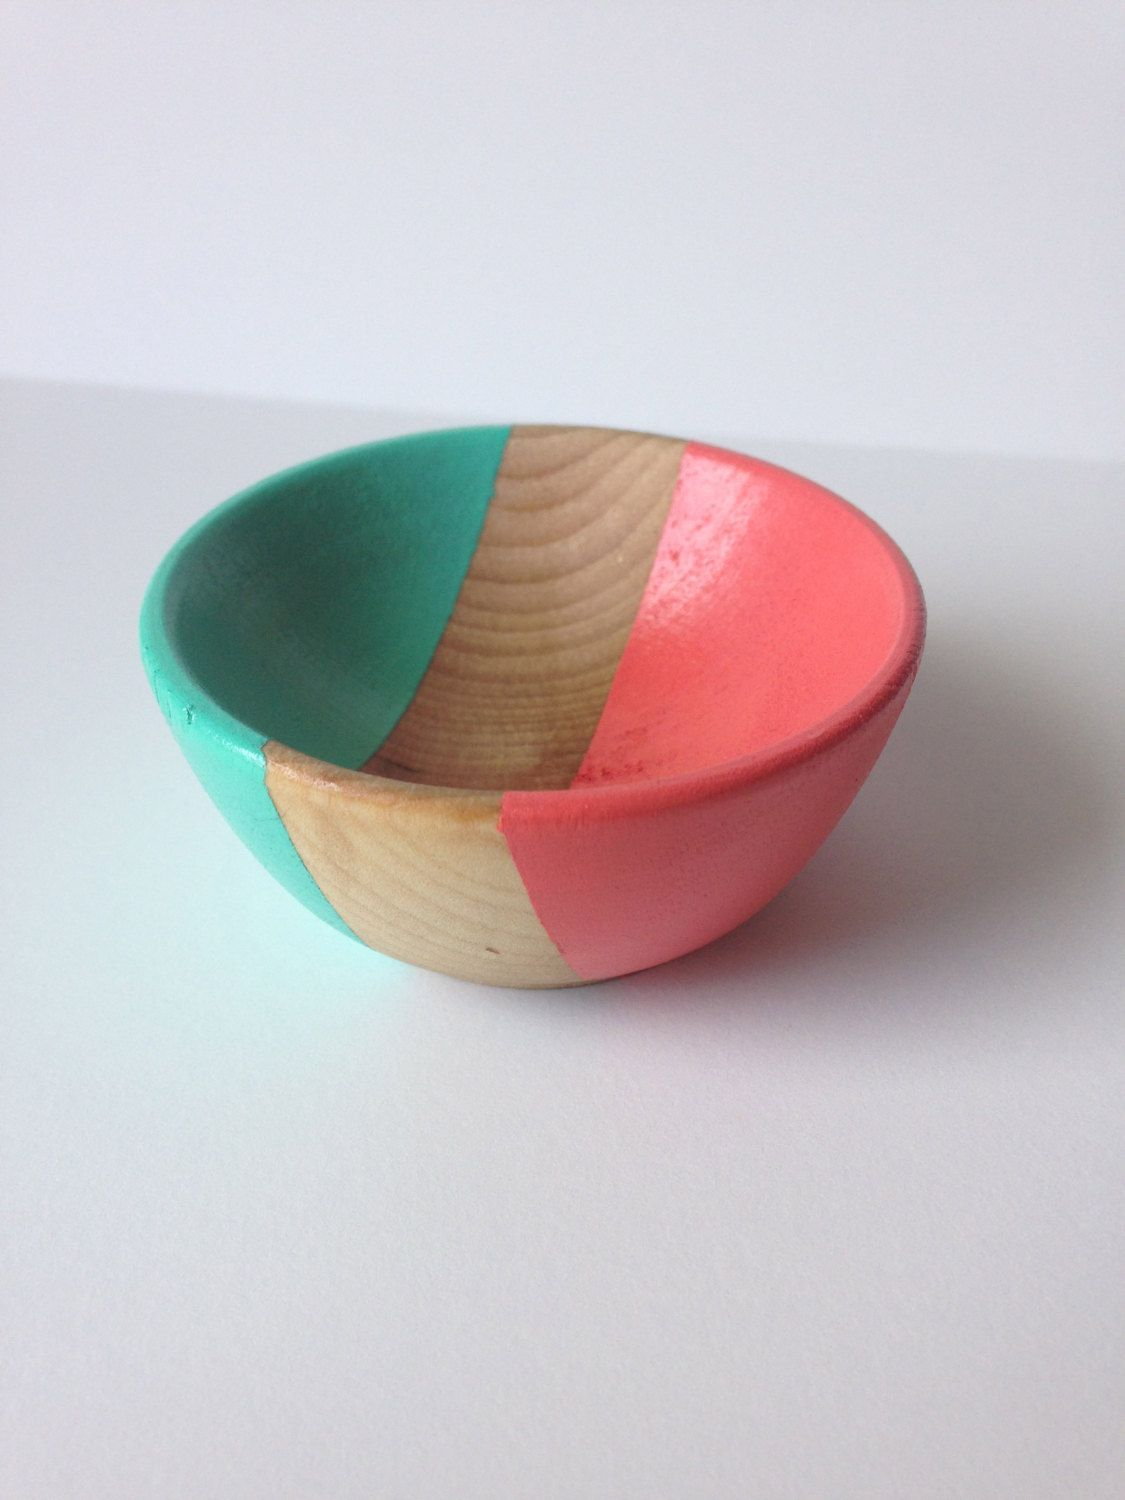 Eco friendly small wooden jewelry bowl, hand painted coral and turquoise, ring bowl, earring bowl, jewelry organization by ChapterIIICreations on Etsy